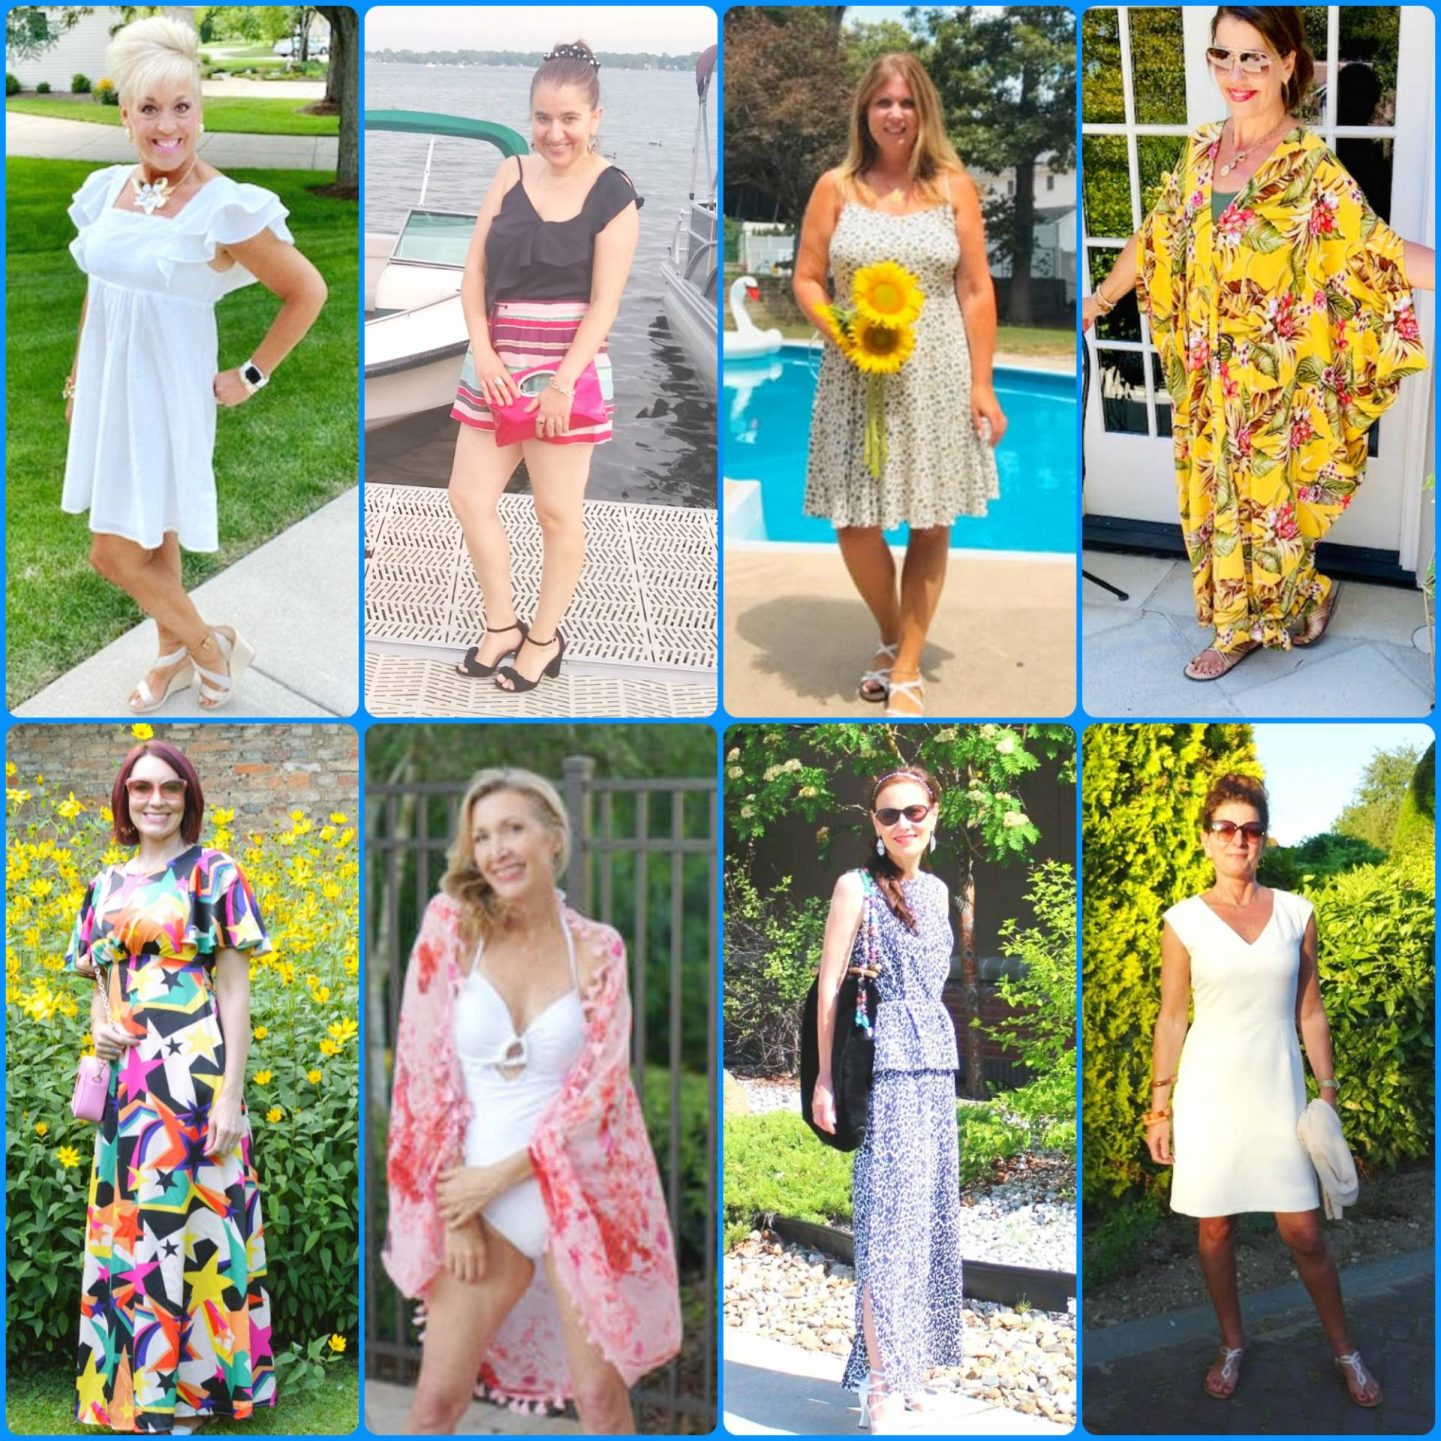 Sizzlin' Summer Style - Stylish Monday Link Up collage